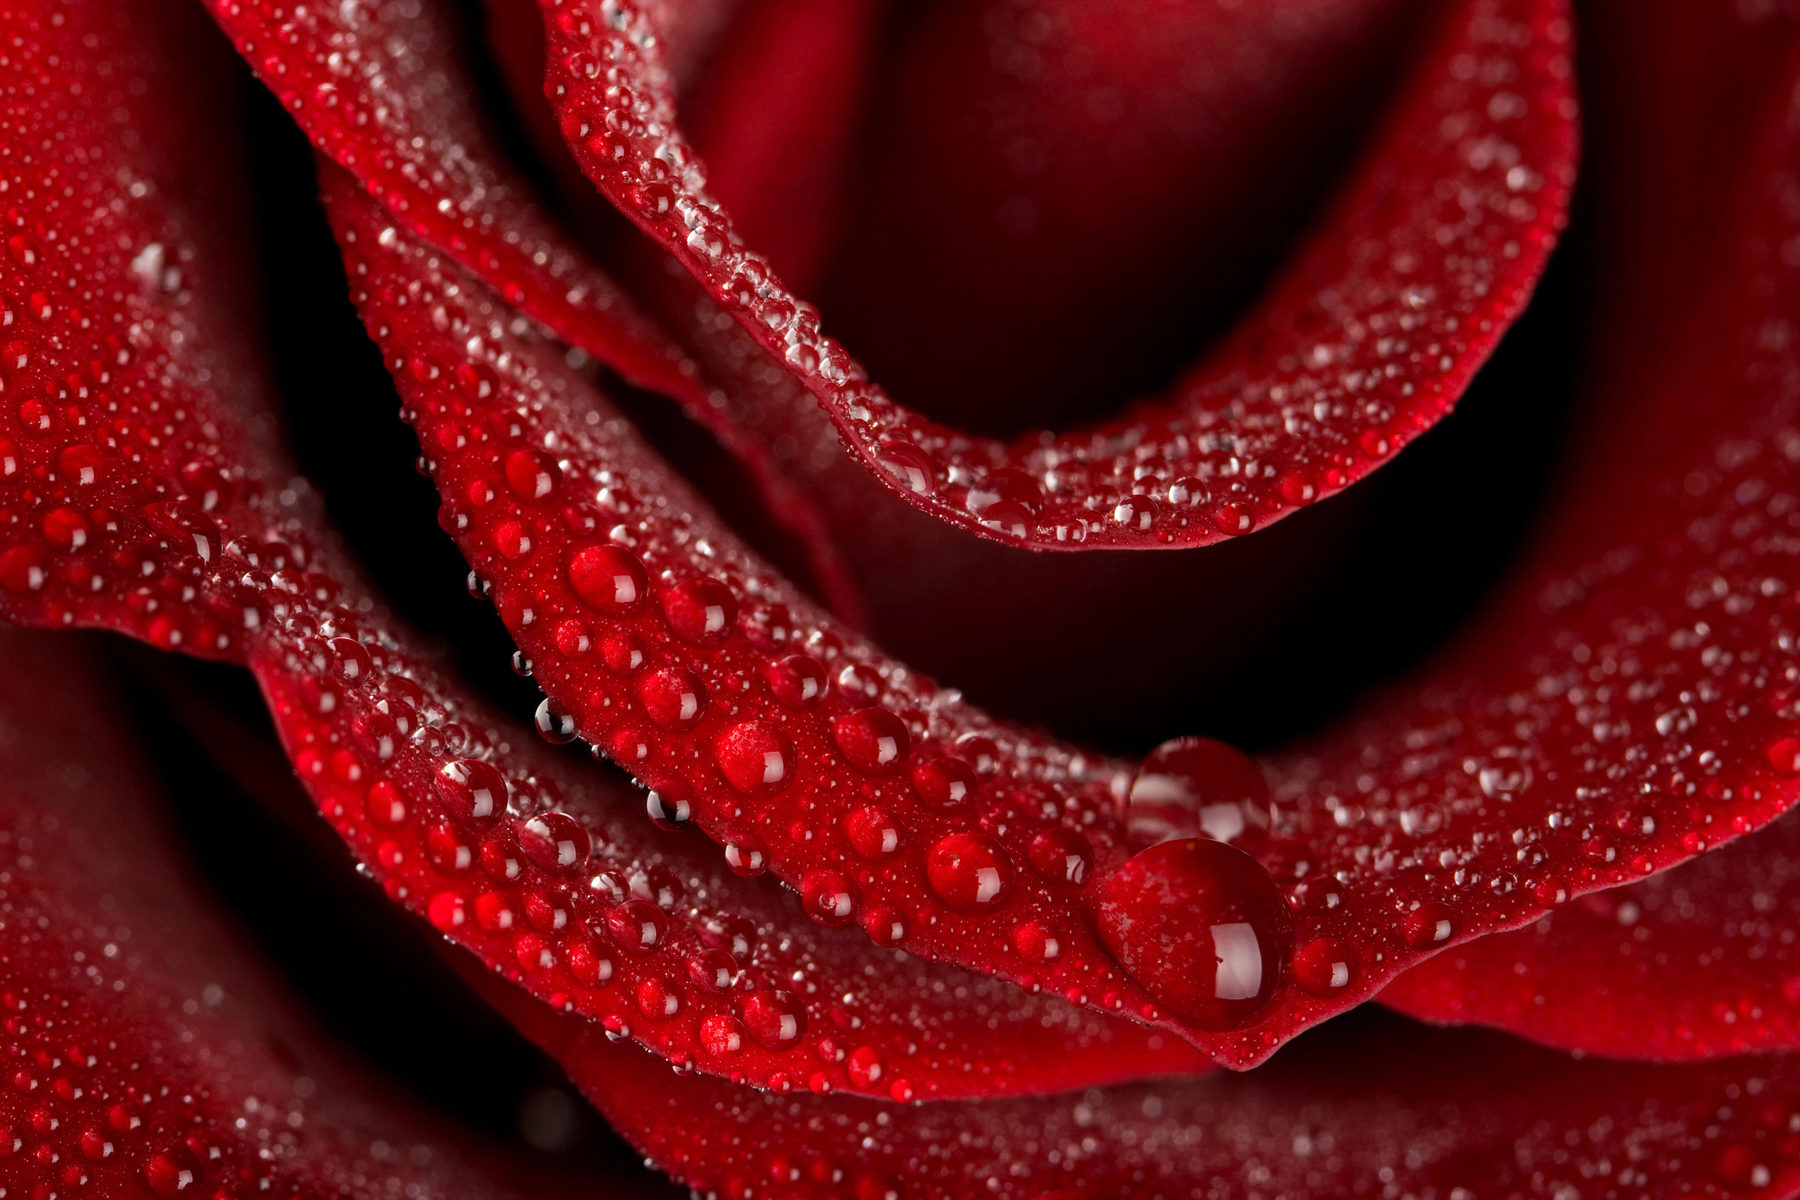 red rose sparkling with water droplets